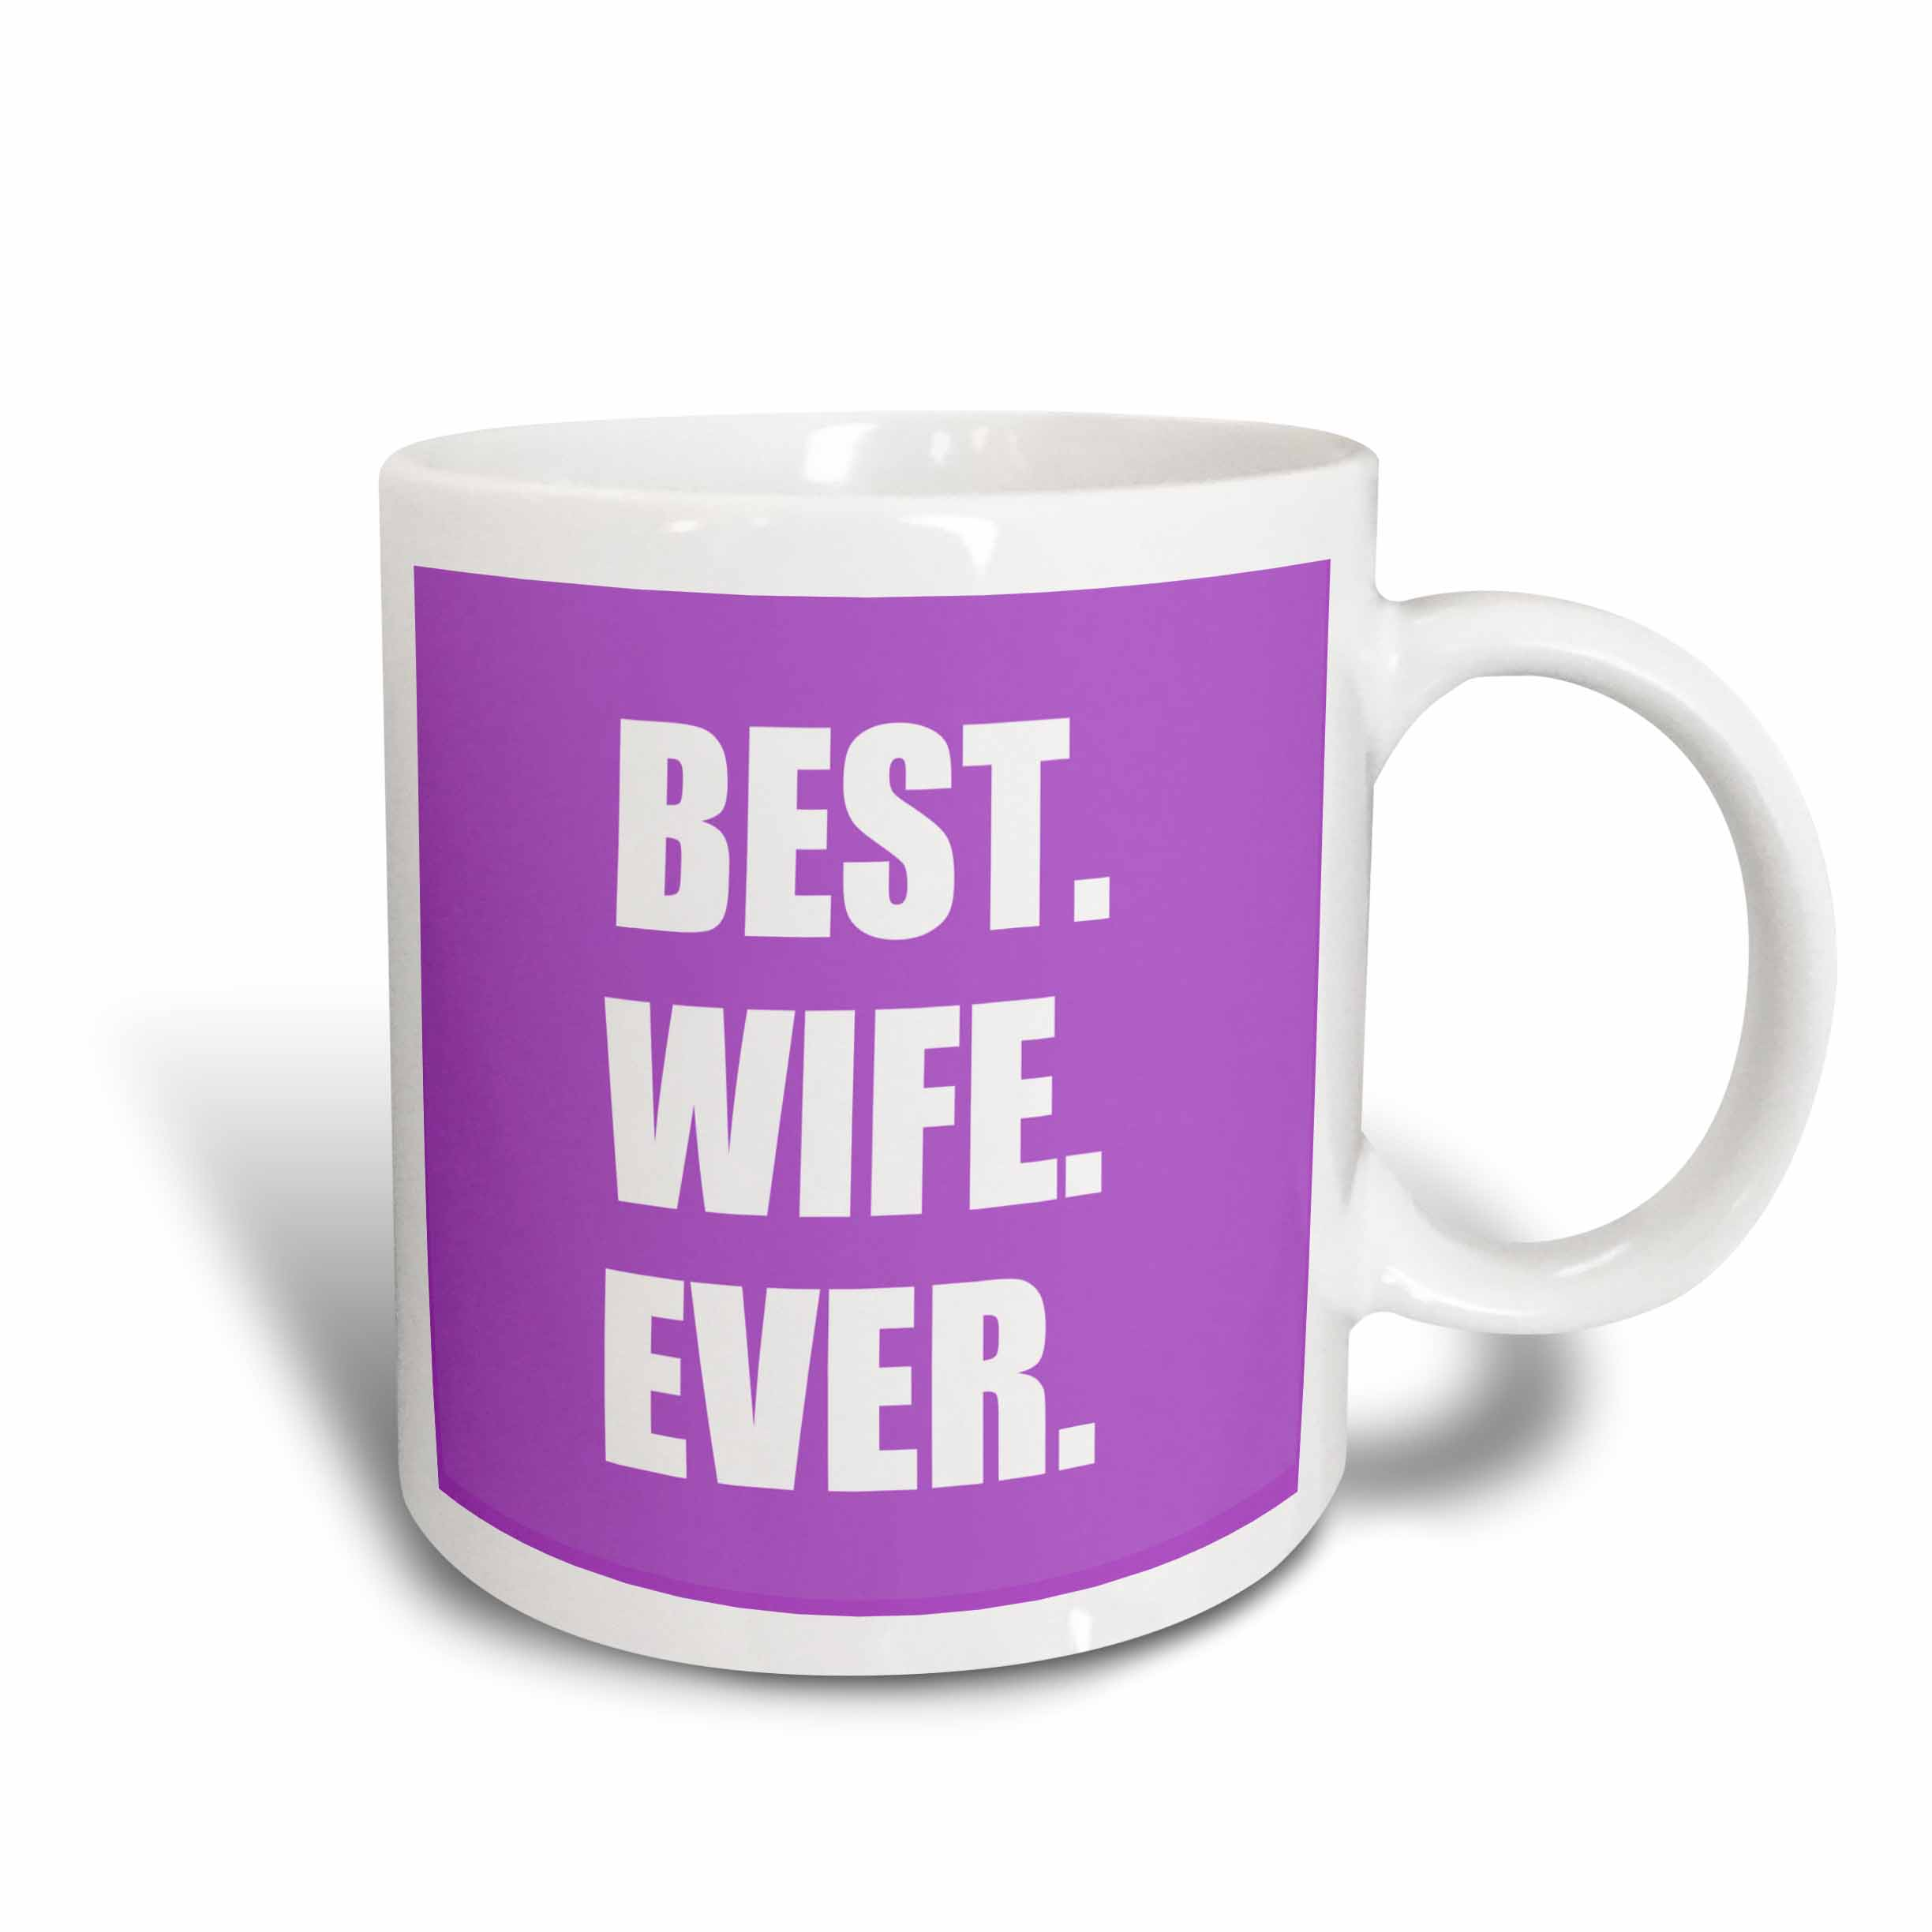 3dRose Purple Best Wife Ever - bold anniversary valentines day gift for her, Ceramic Mug, 15-ounce